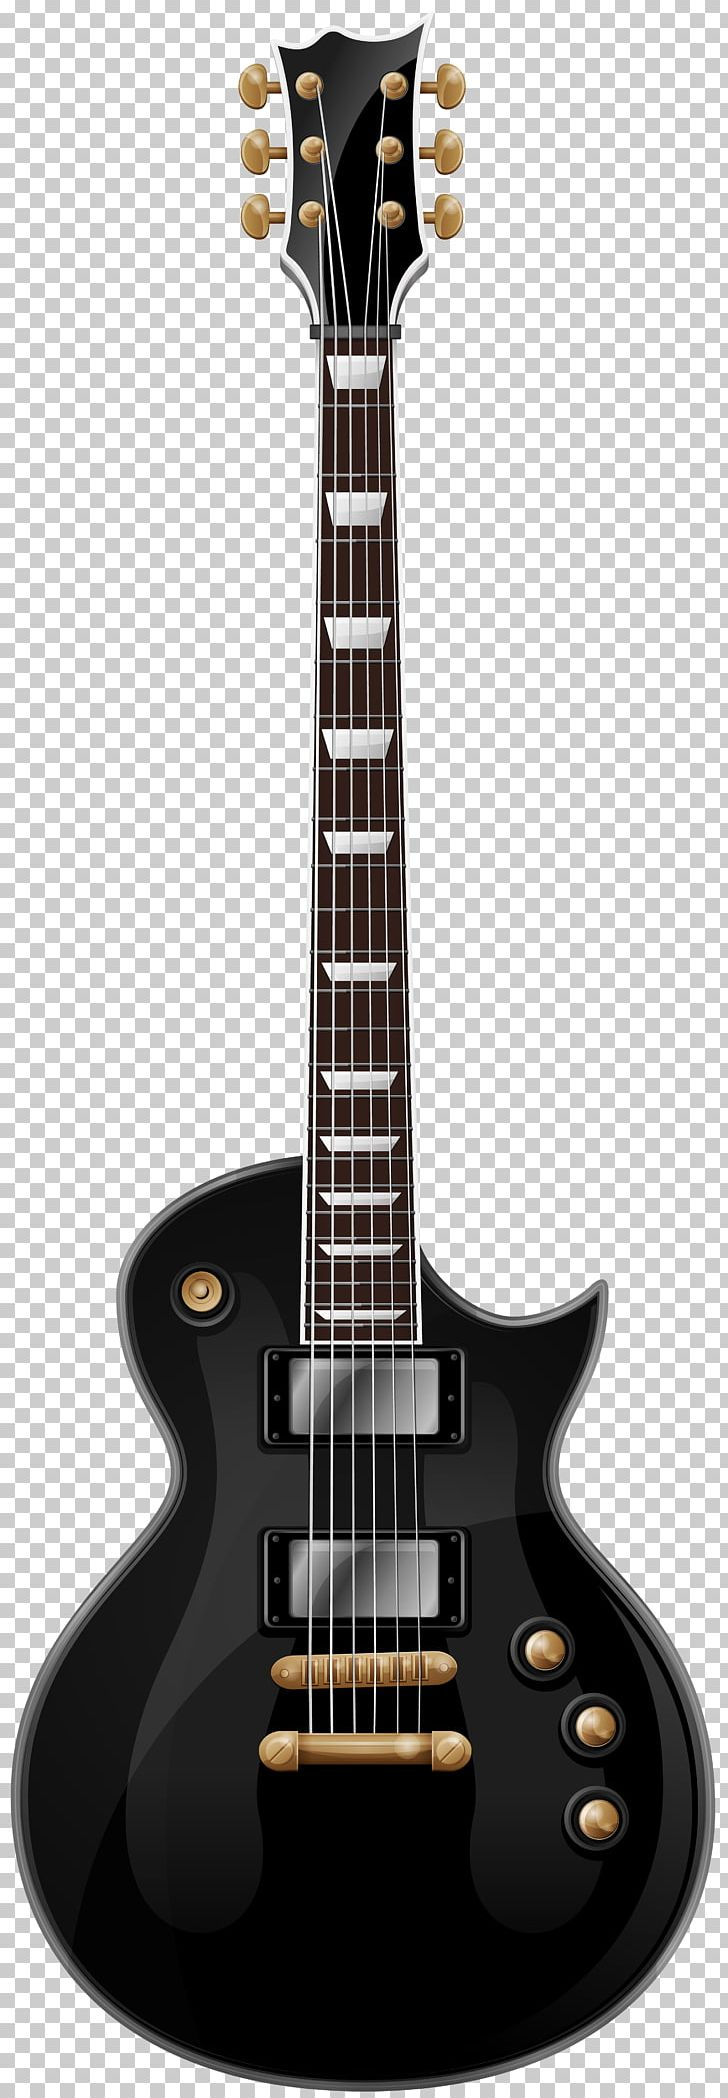 ESP LTD EC-1000 EMG 81 ESP LTD MH-1000 Electric Guitar PNG, Clipart, Acoustic Electric Guitar, Acoustic Guitar, Bass Guitar, Cavaquinho, Clipart Free PNG Download